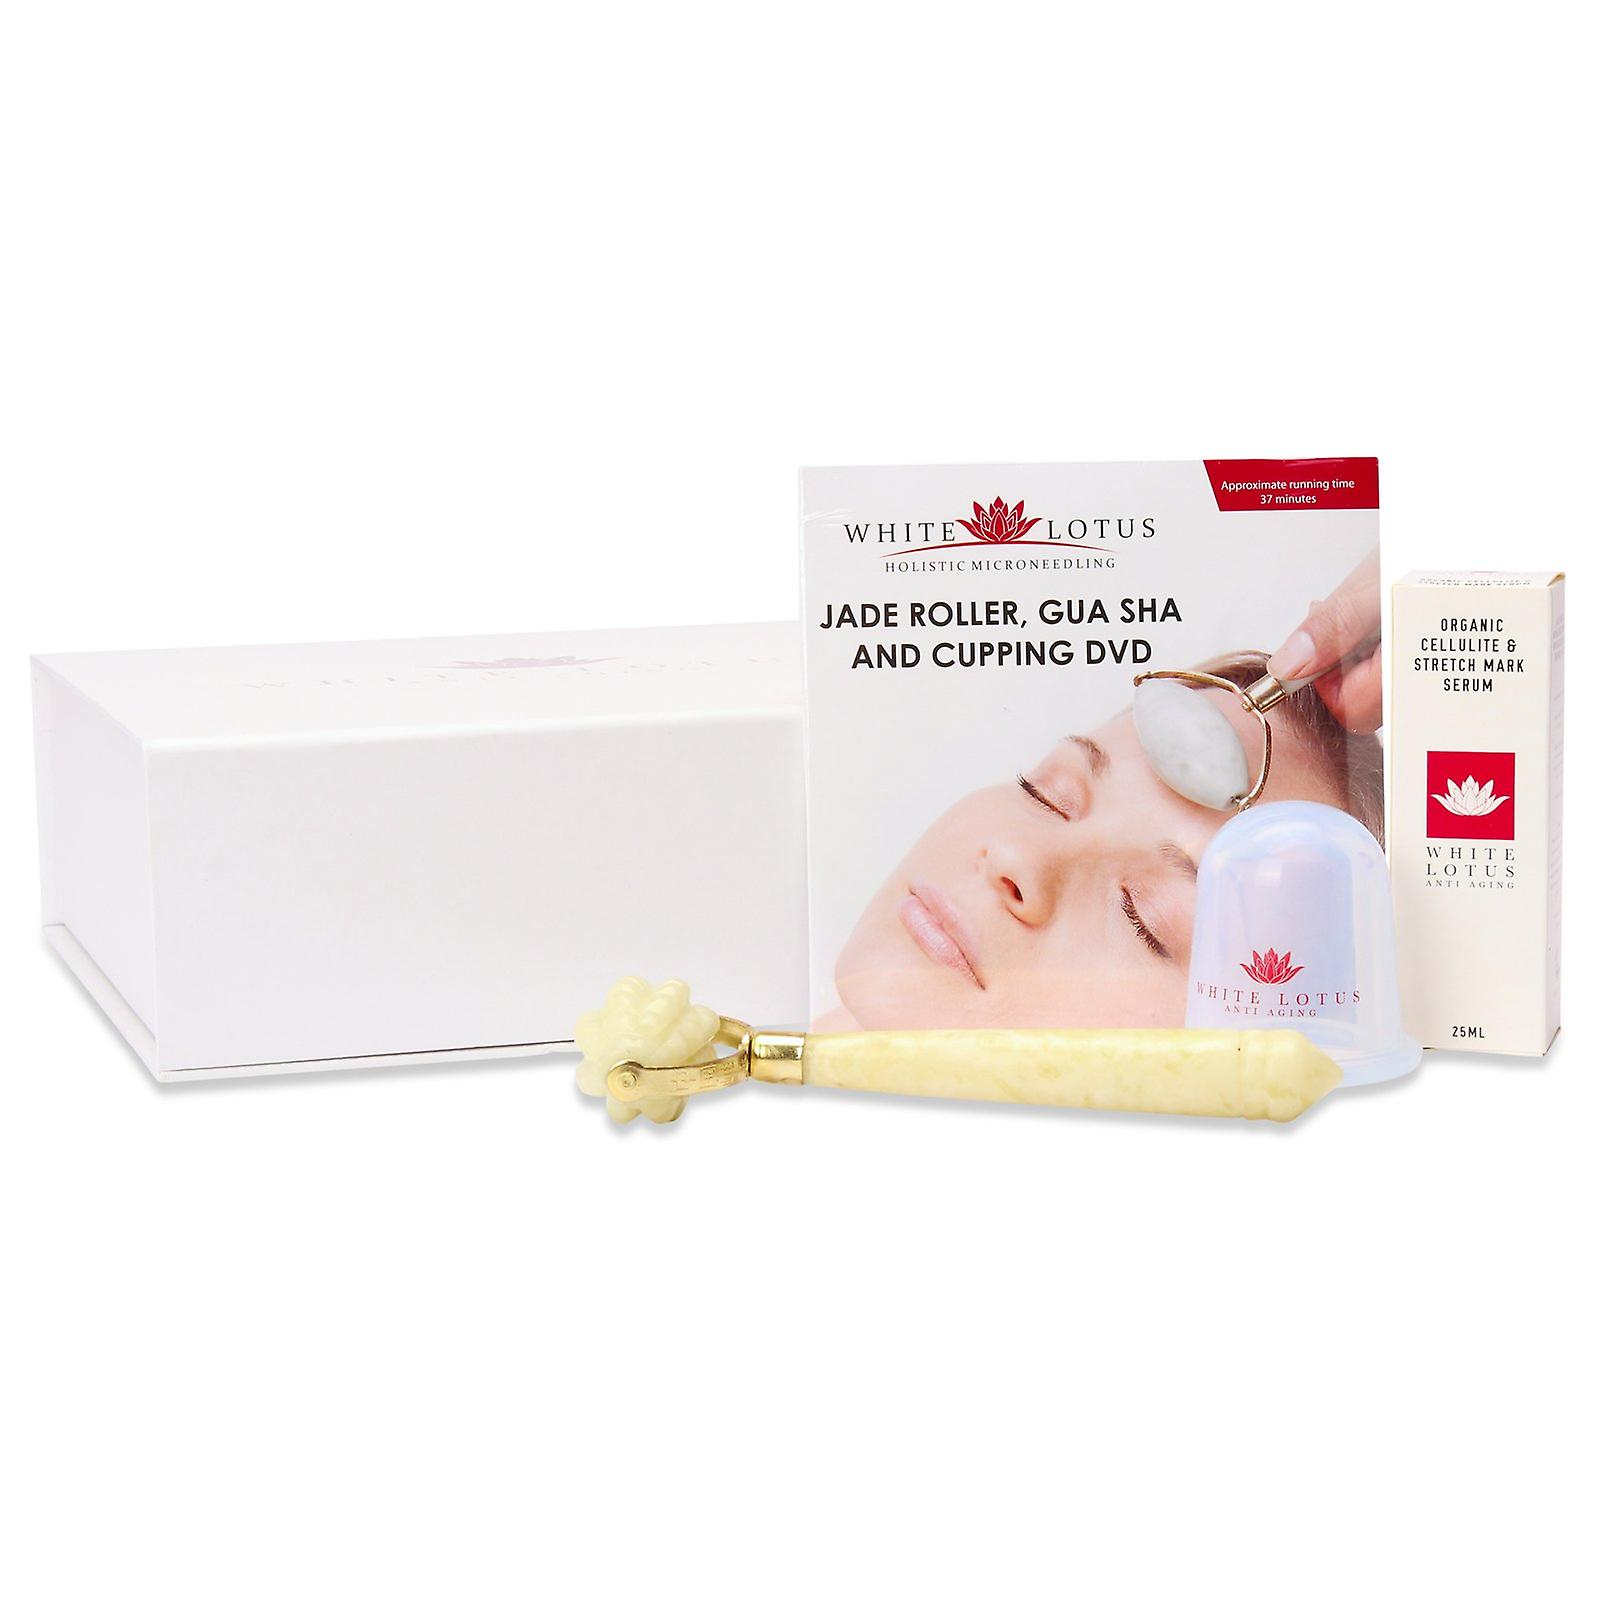 Jade roller stretch mark & cellulite kit